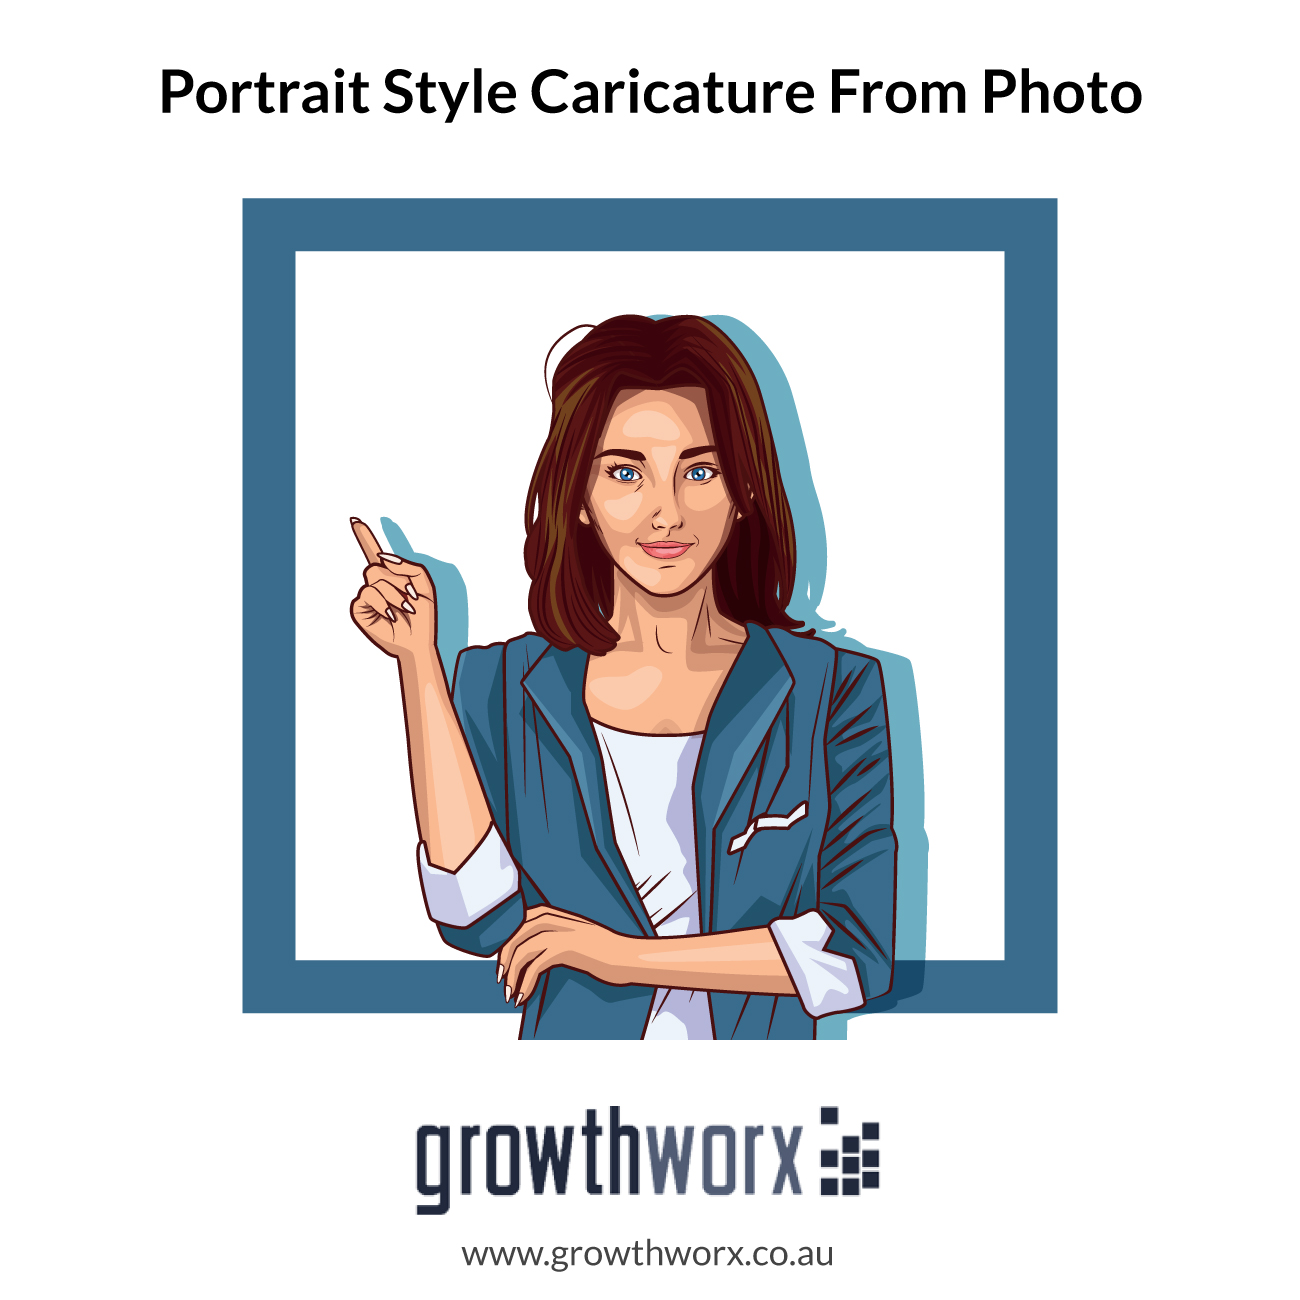 I will draw a portrait style caricature from photo 1